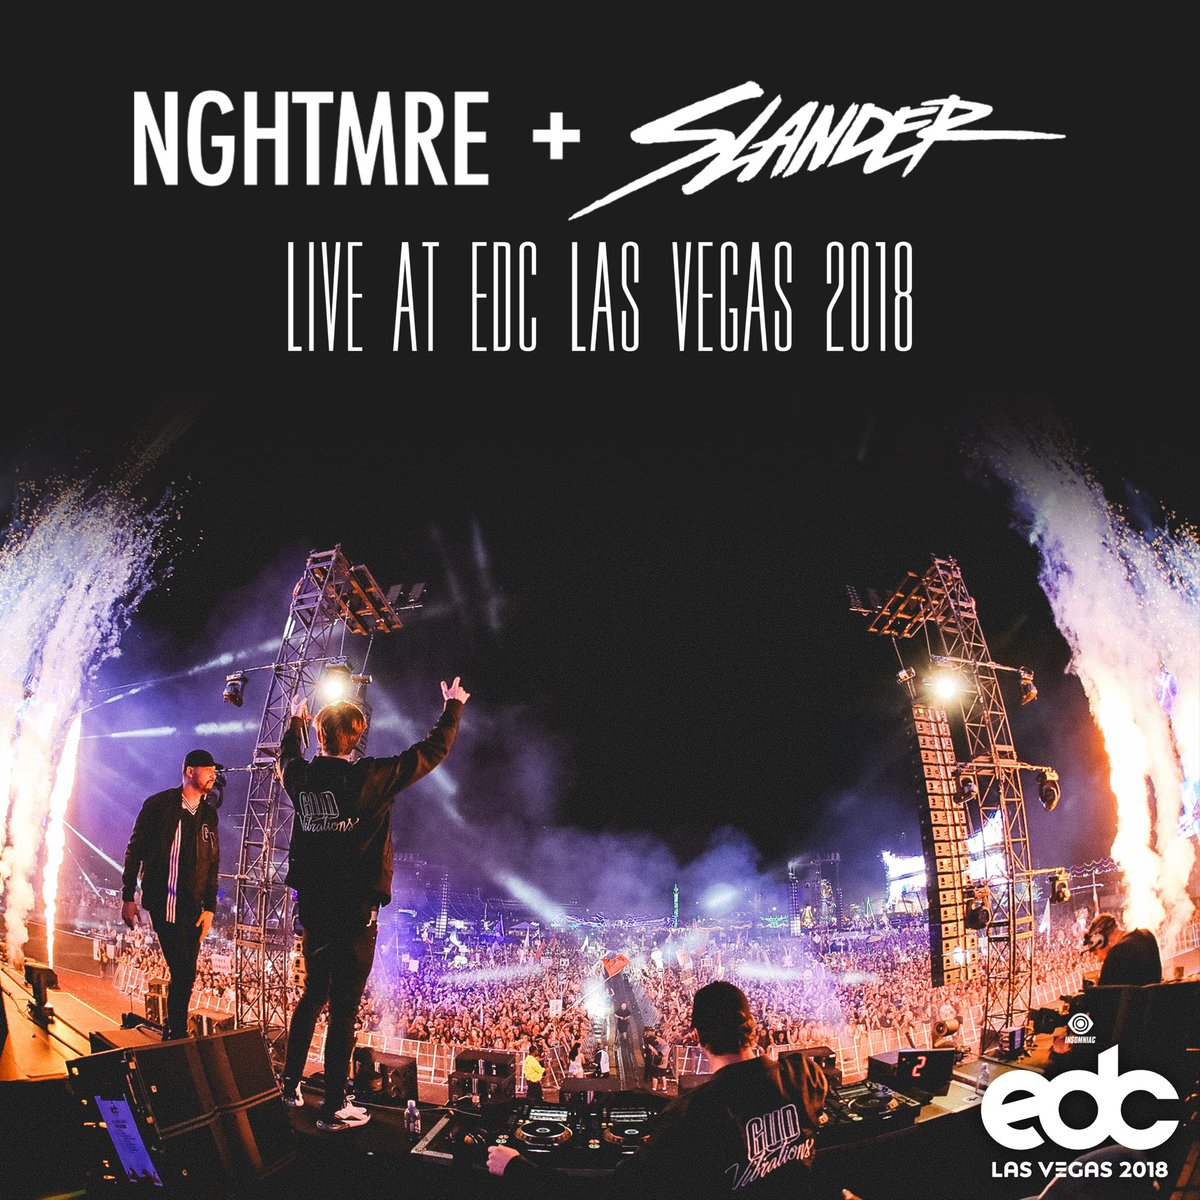 NGHTMRE B2B SLANDER LIVESTREAM BEGINS 7PM PST NEXT FRIDAY 4/10/20  Since @EDC_LasVegas was postponed we felt it was only right to bring back some of that magic for u guys so we're releasing the full festival livestream of our set w/ @NGHTMRE from EDC 2018  http://twitch.tv/slanderpic.twitter.com/60OQeeWeqj